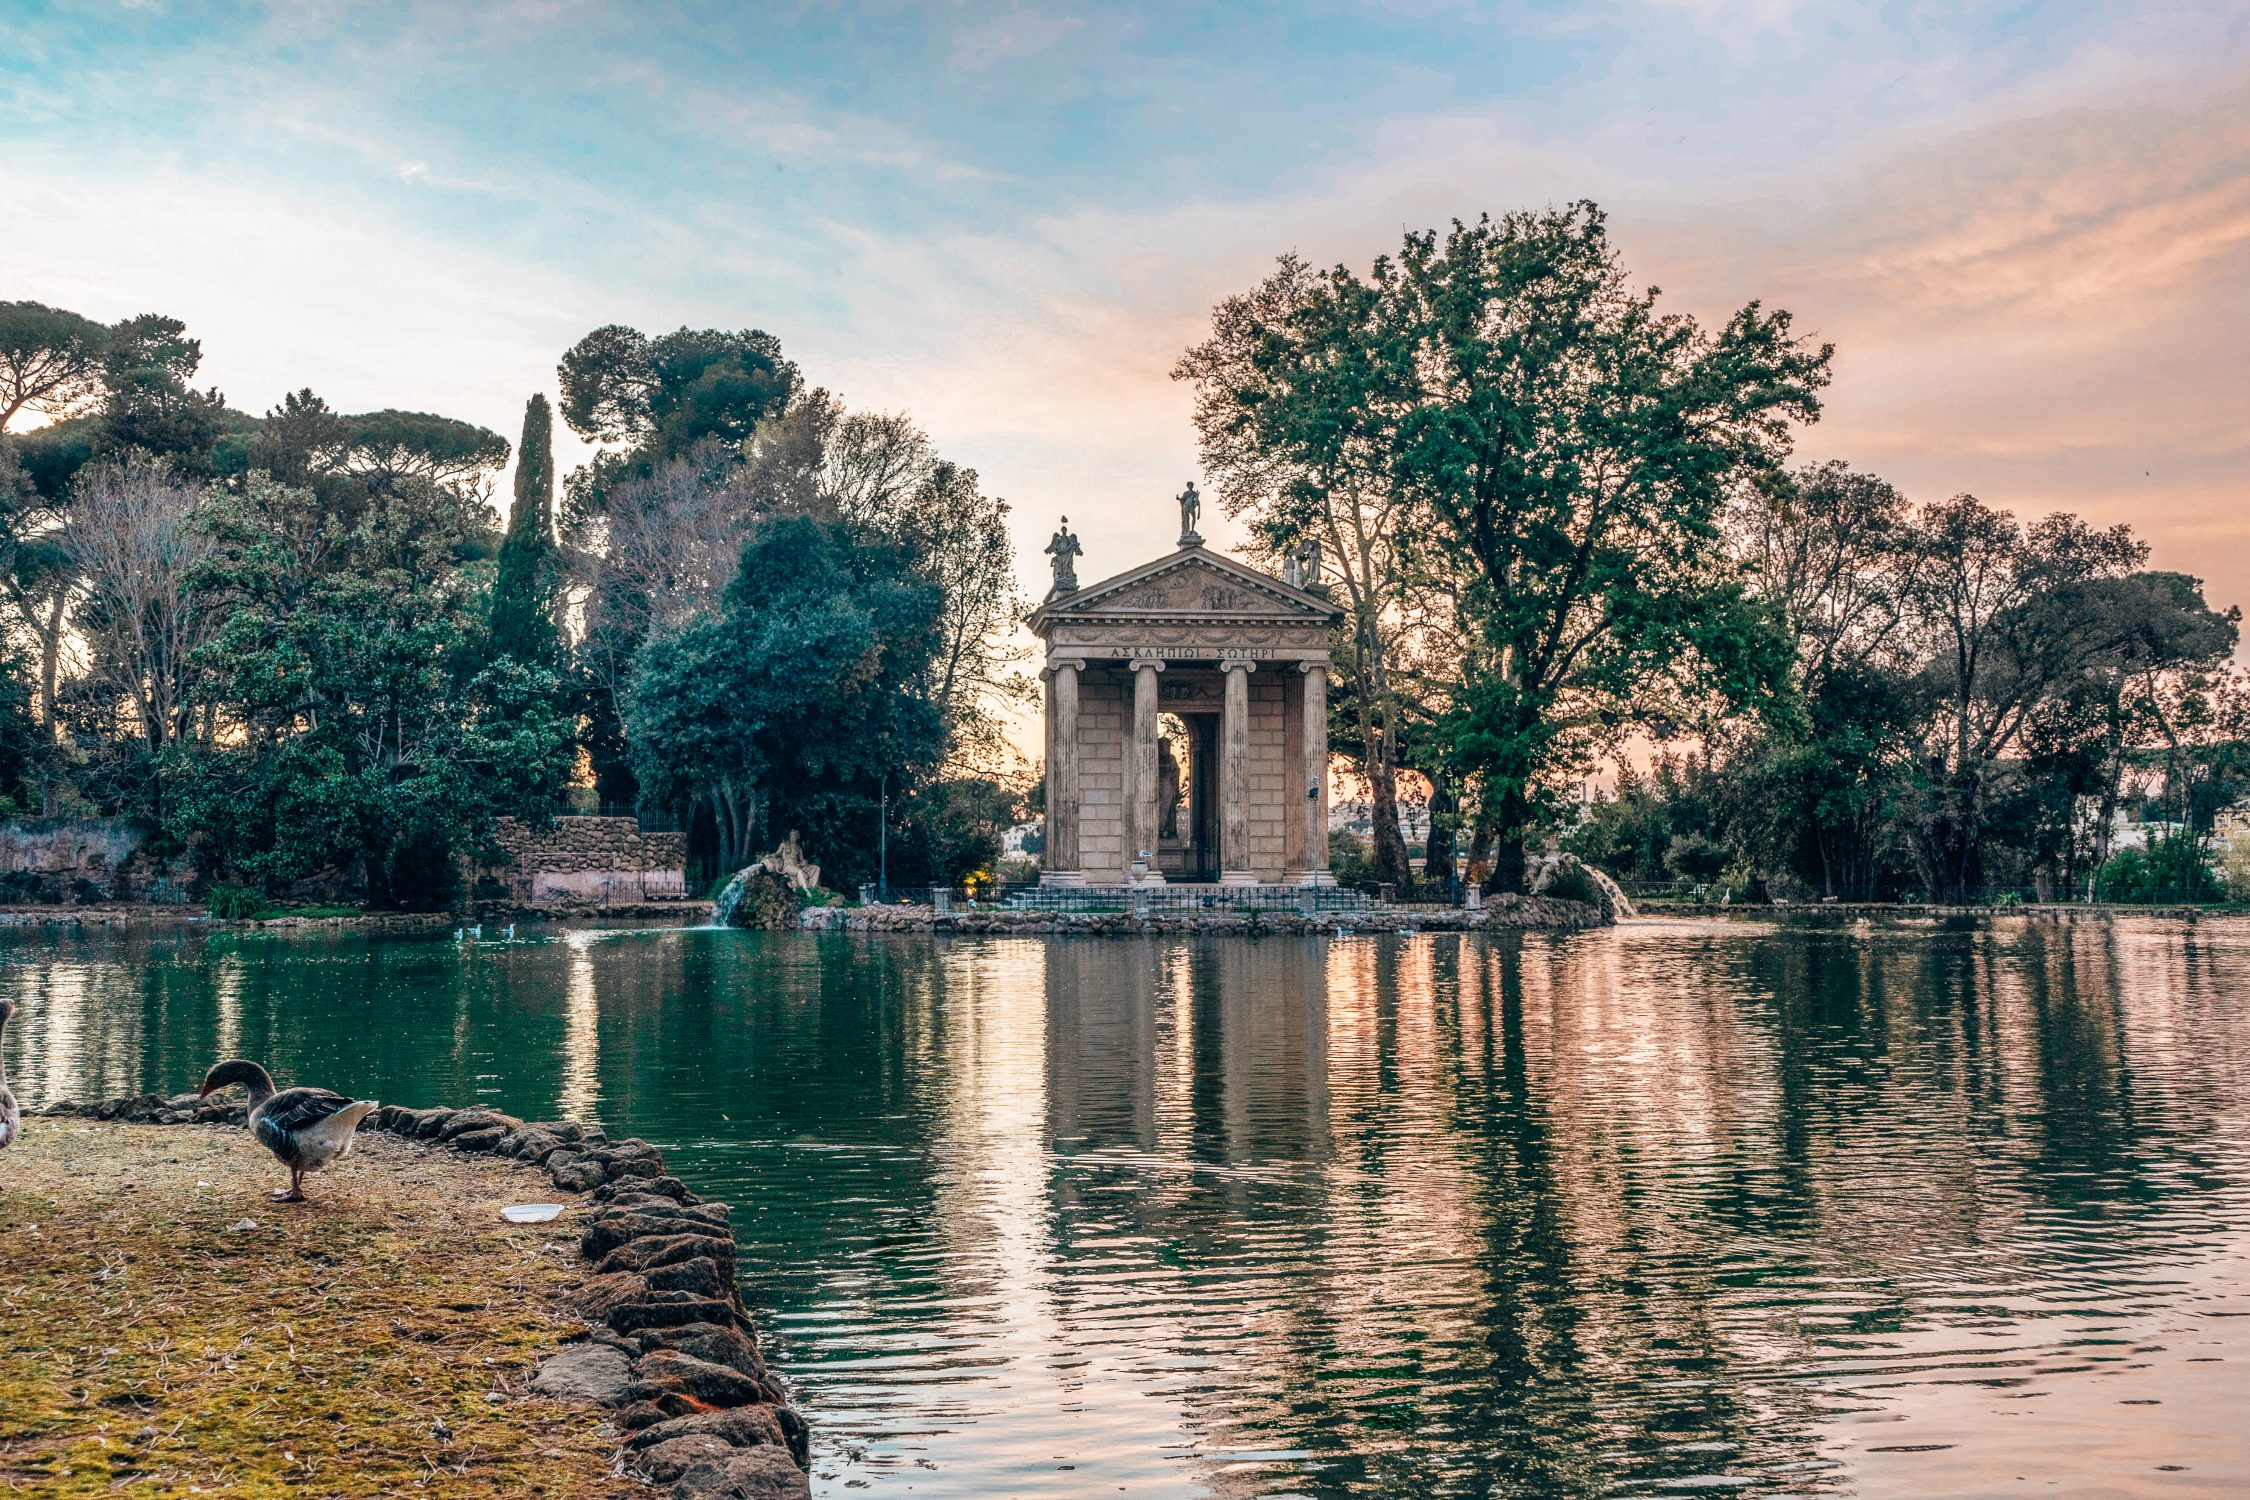 Temple of Asclepius Rome